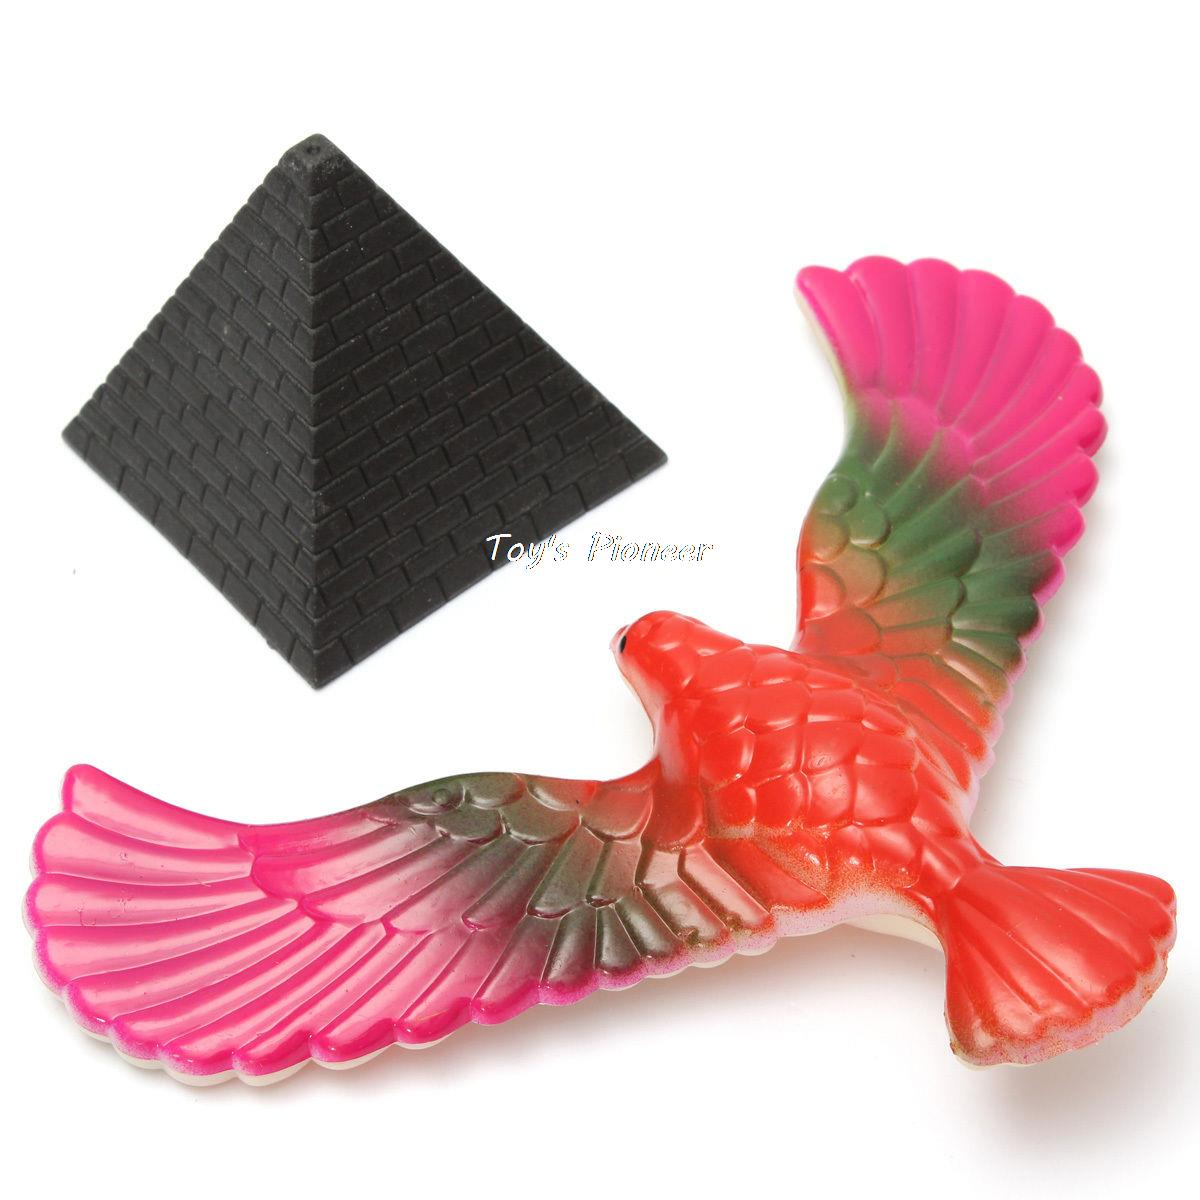 New Classical Magic Balancing Bird Science Desk Toy Novelty Eagle Fun Learning